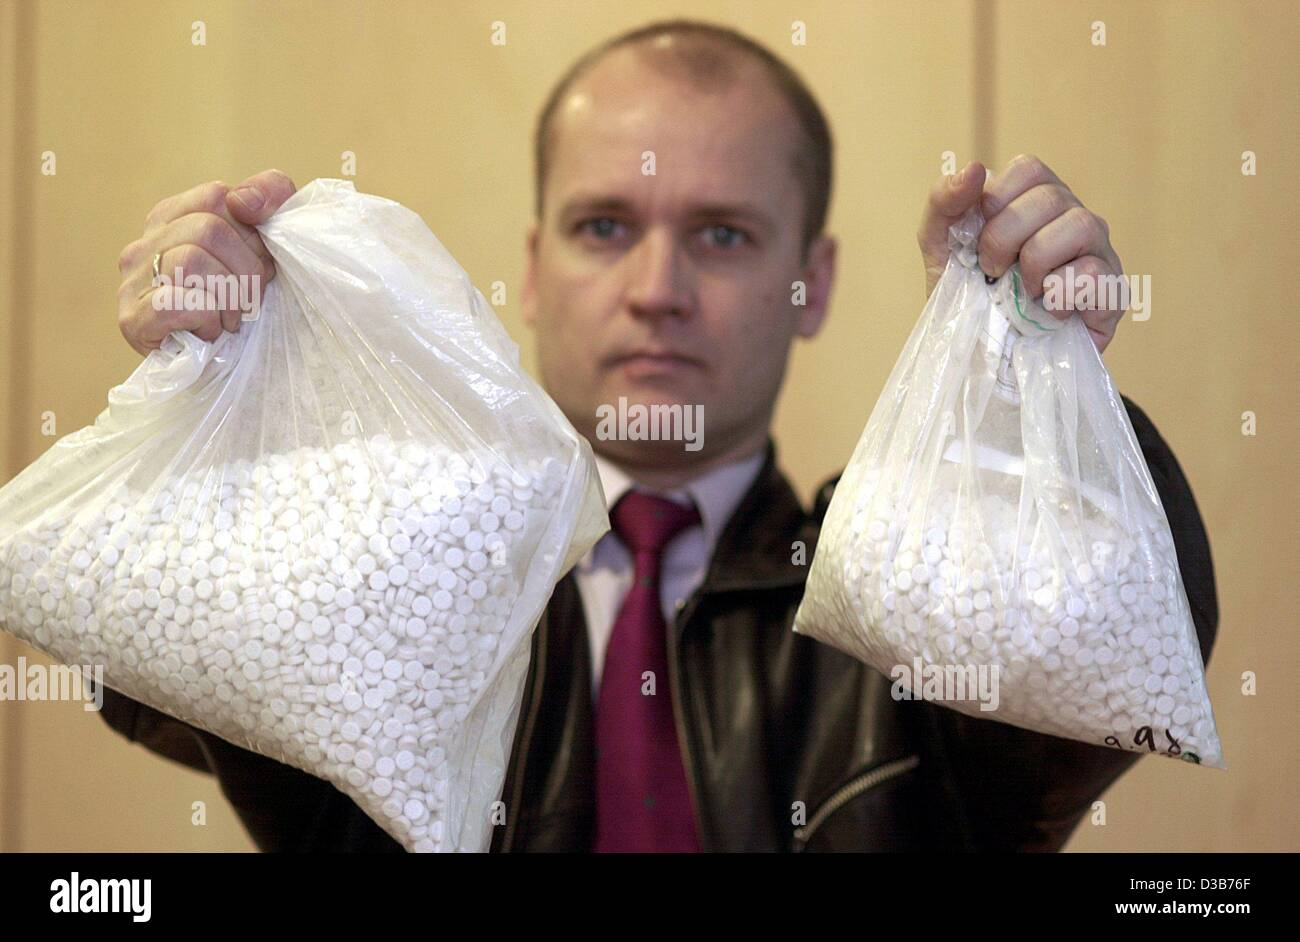 (dpa) - A police spokesman shows two bags of ecstasy pills in the police department in Frankfurt, 23 December 2002. - Stock Image